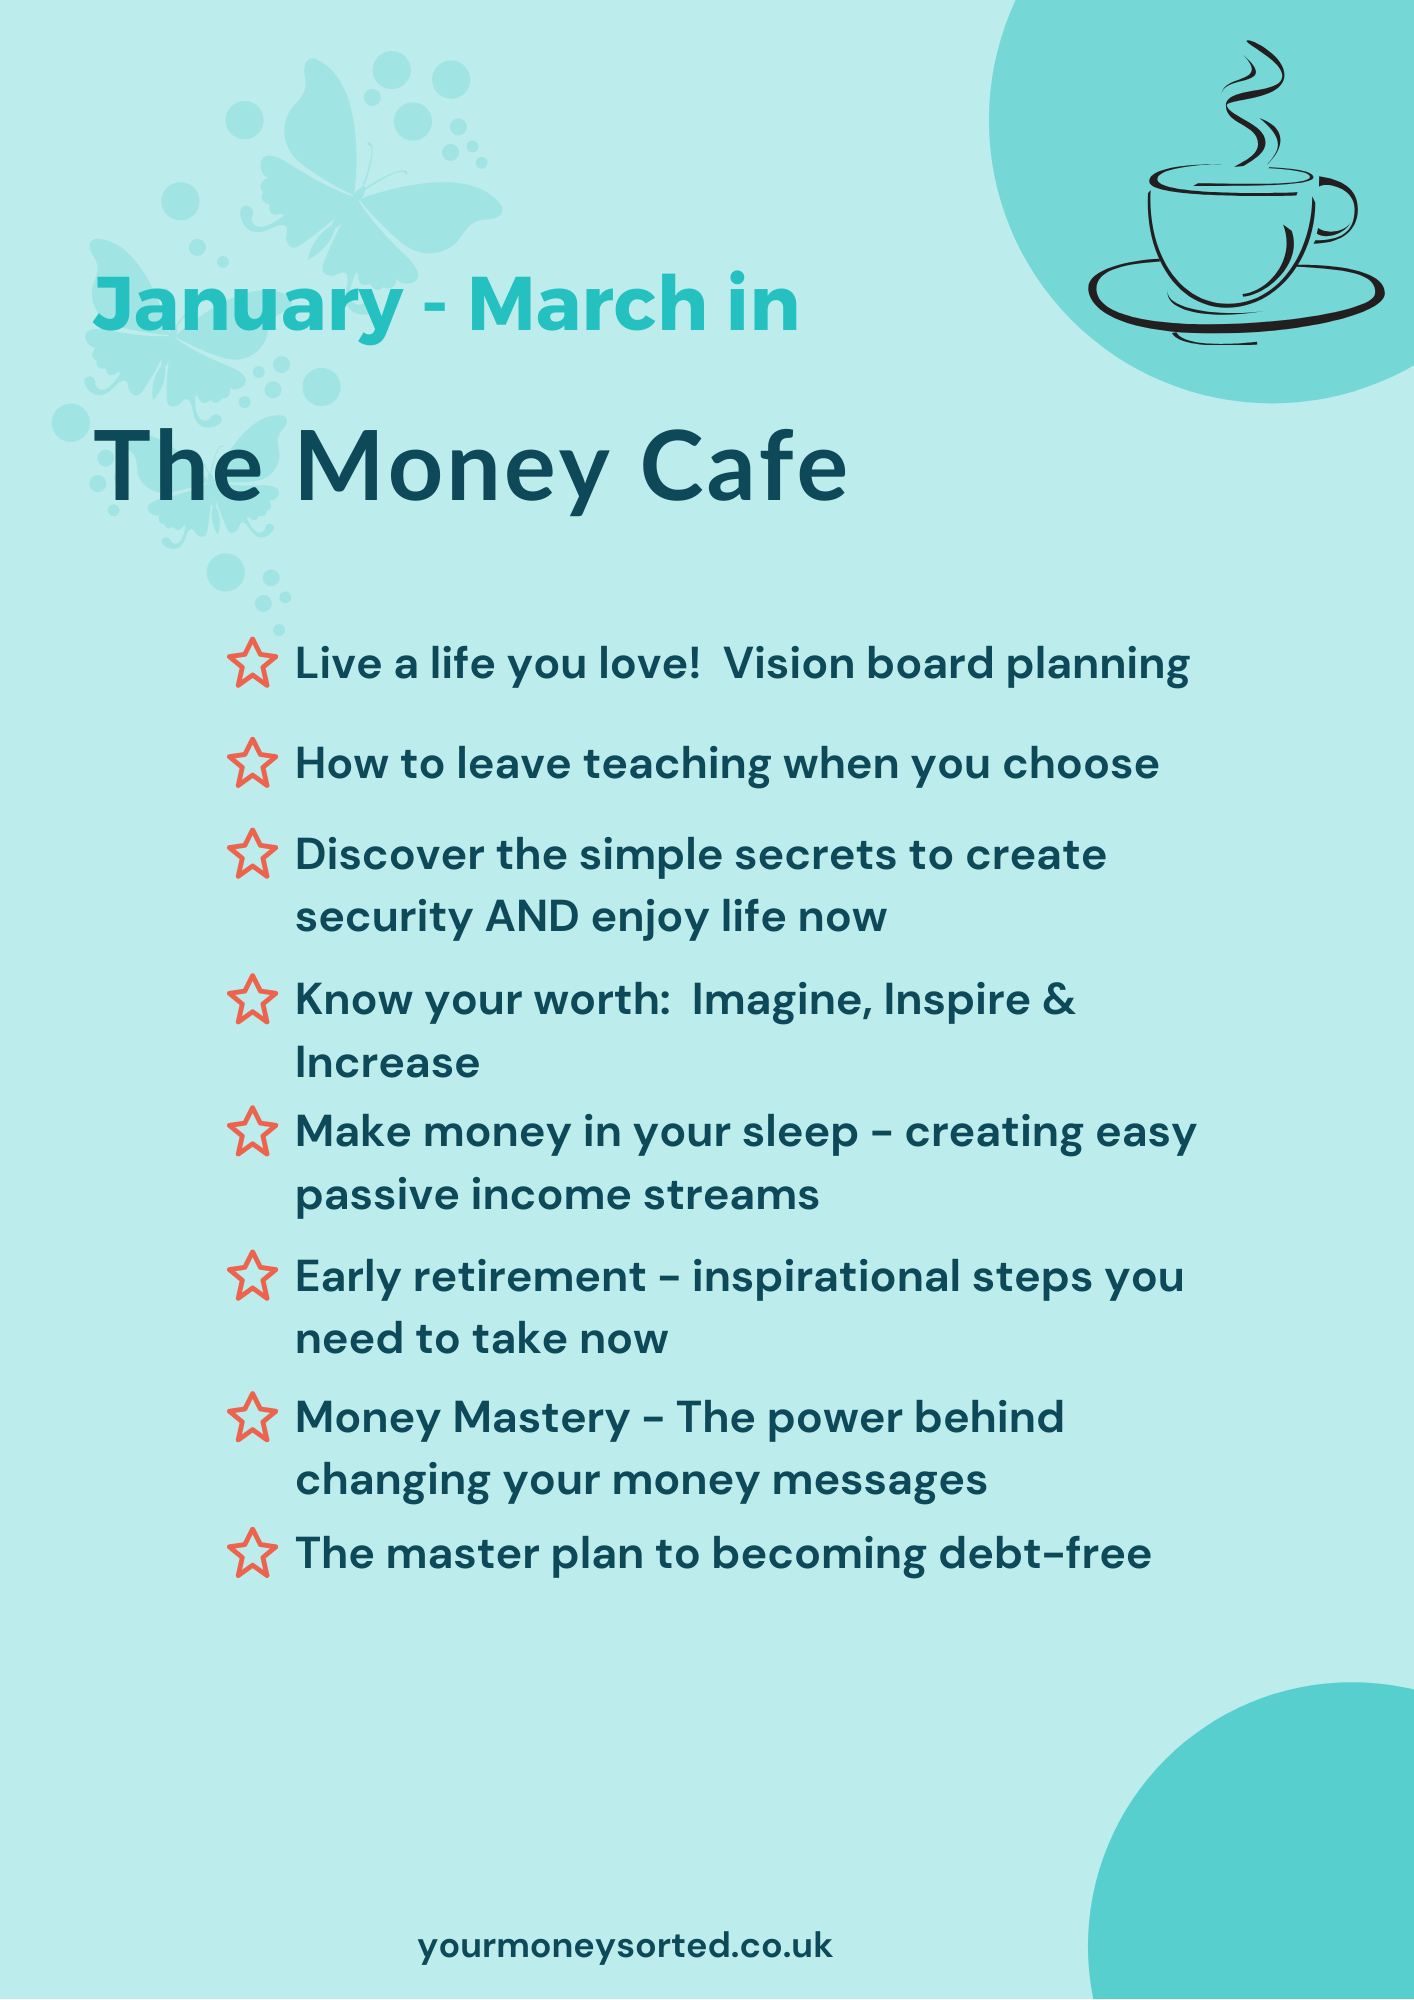 the money cafe content